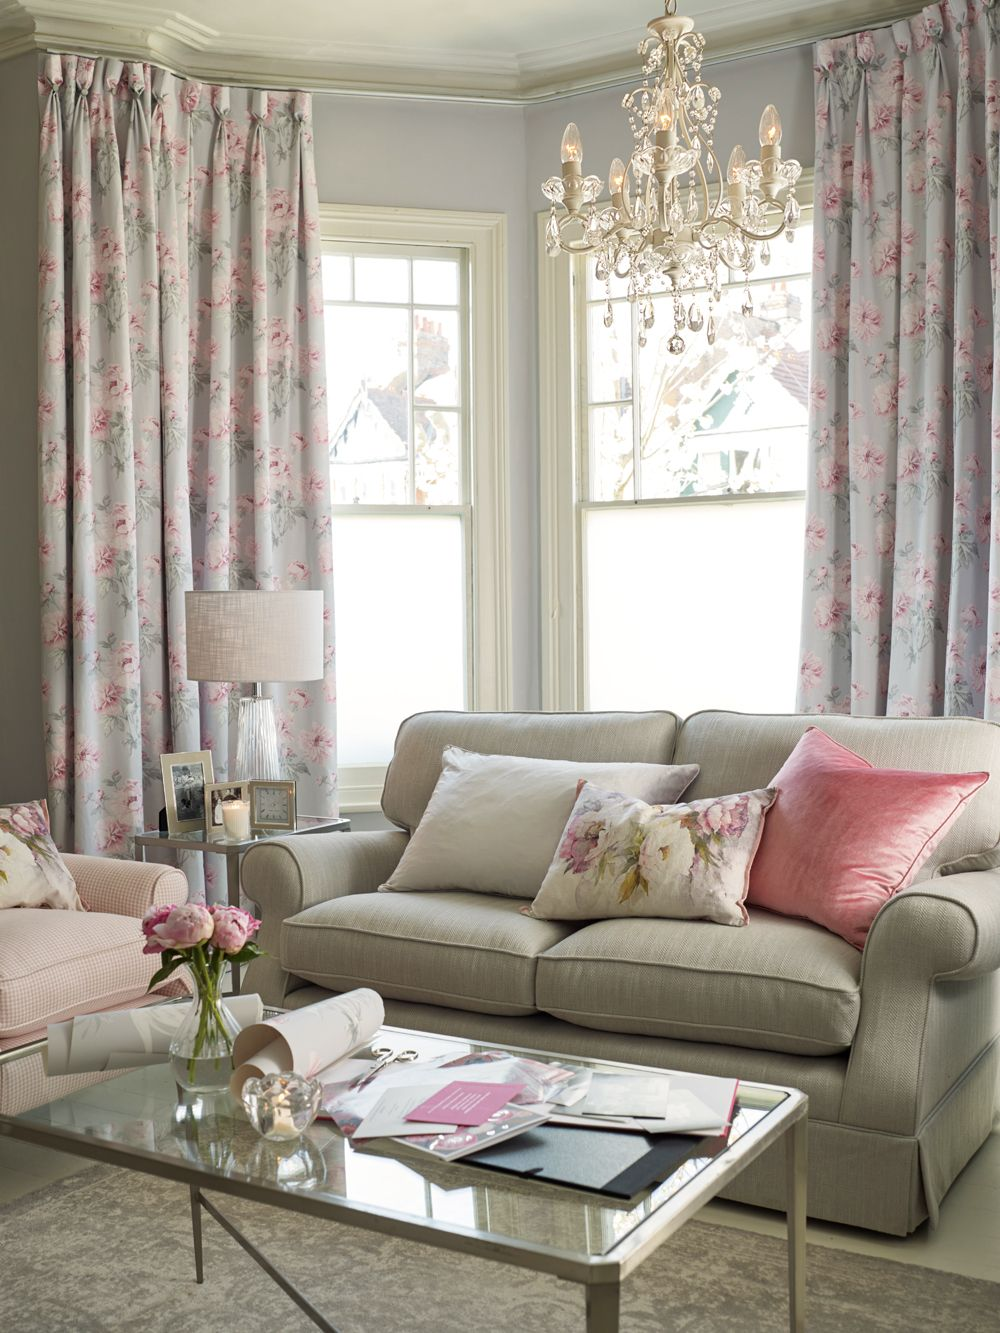 Laura Ashley Aw15 Interiors Silverserenity Amazing